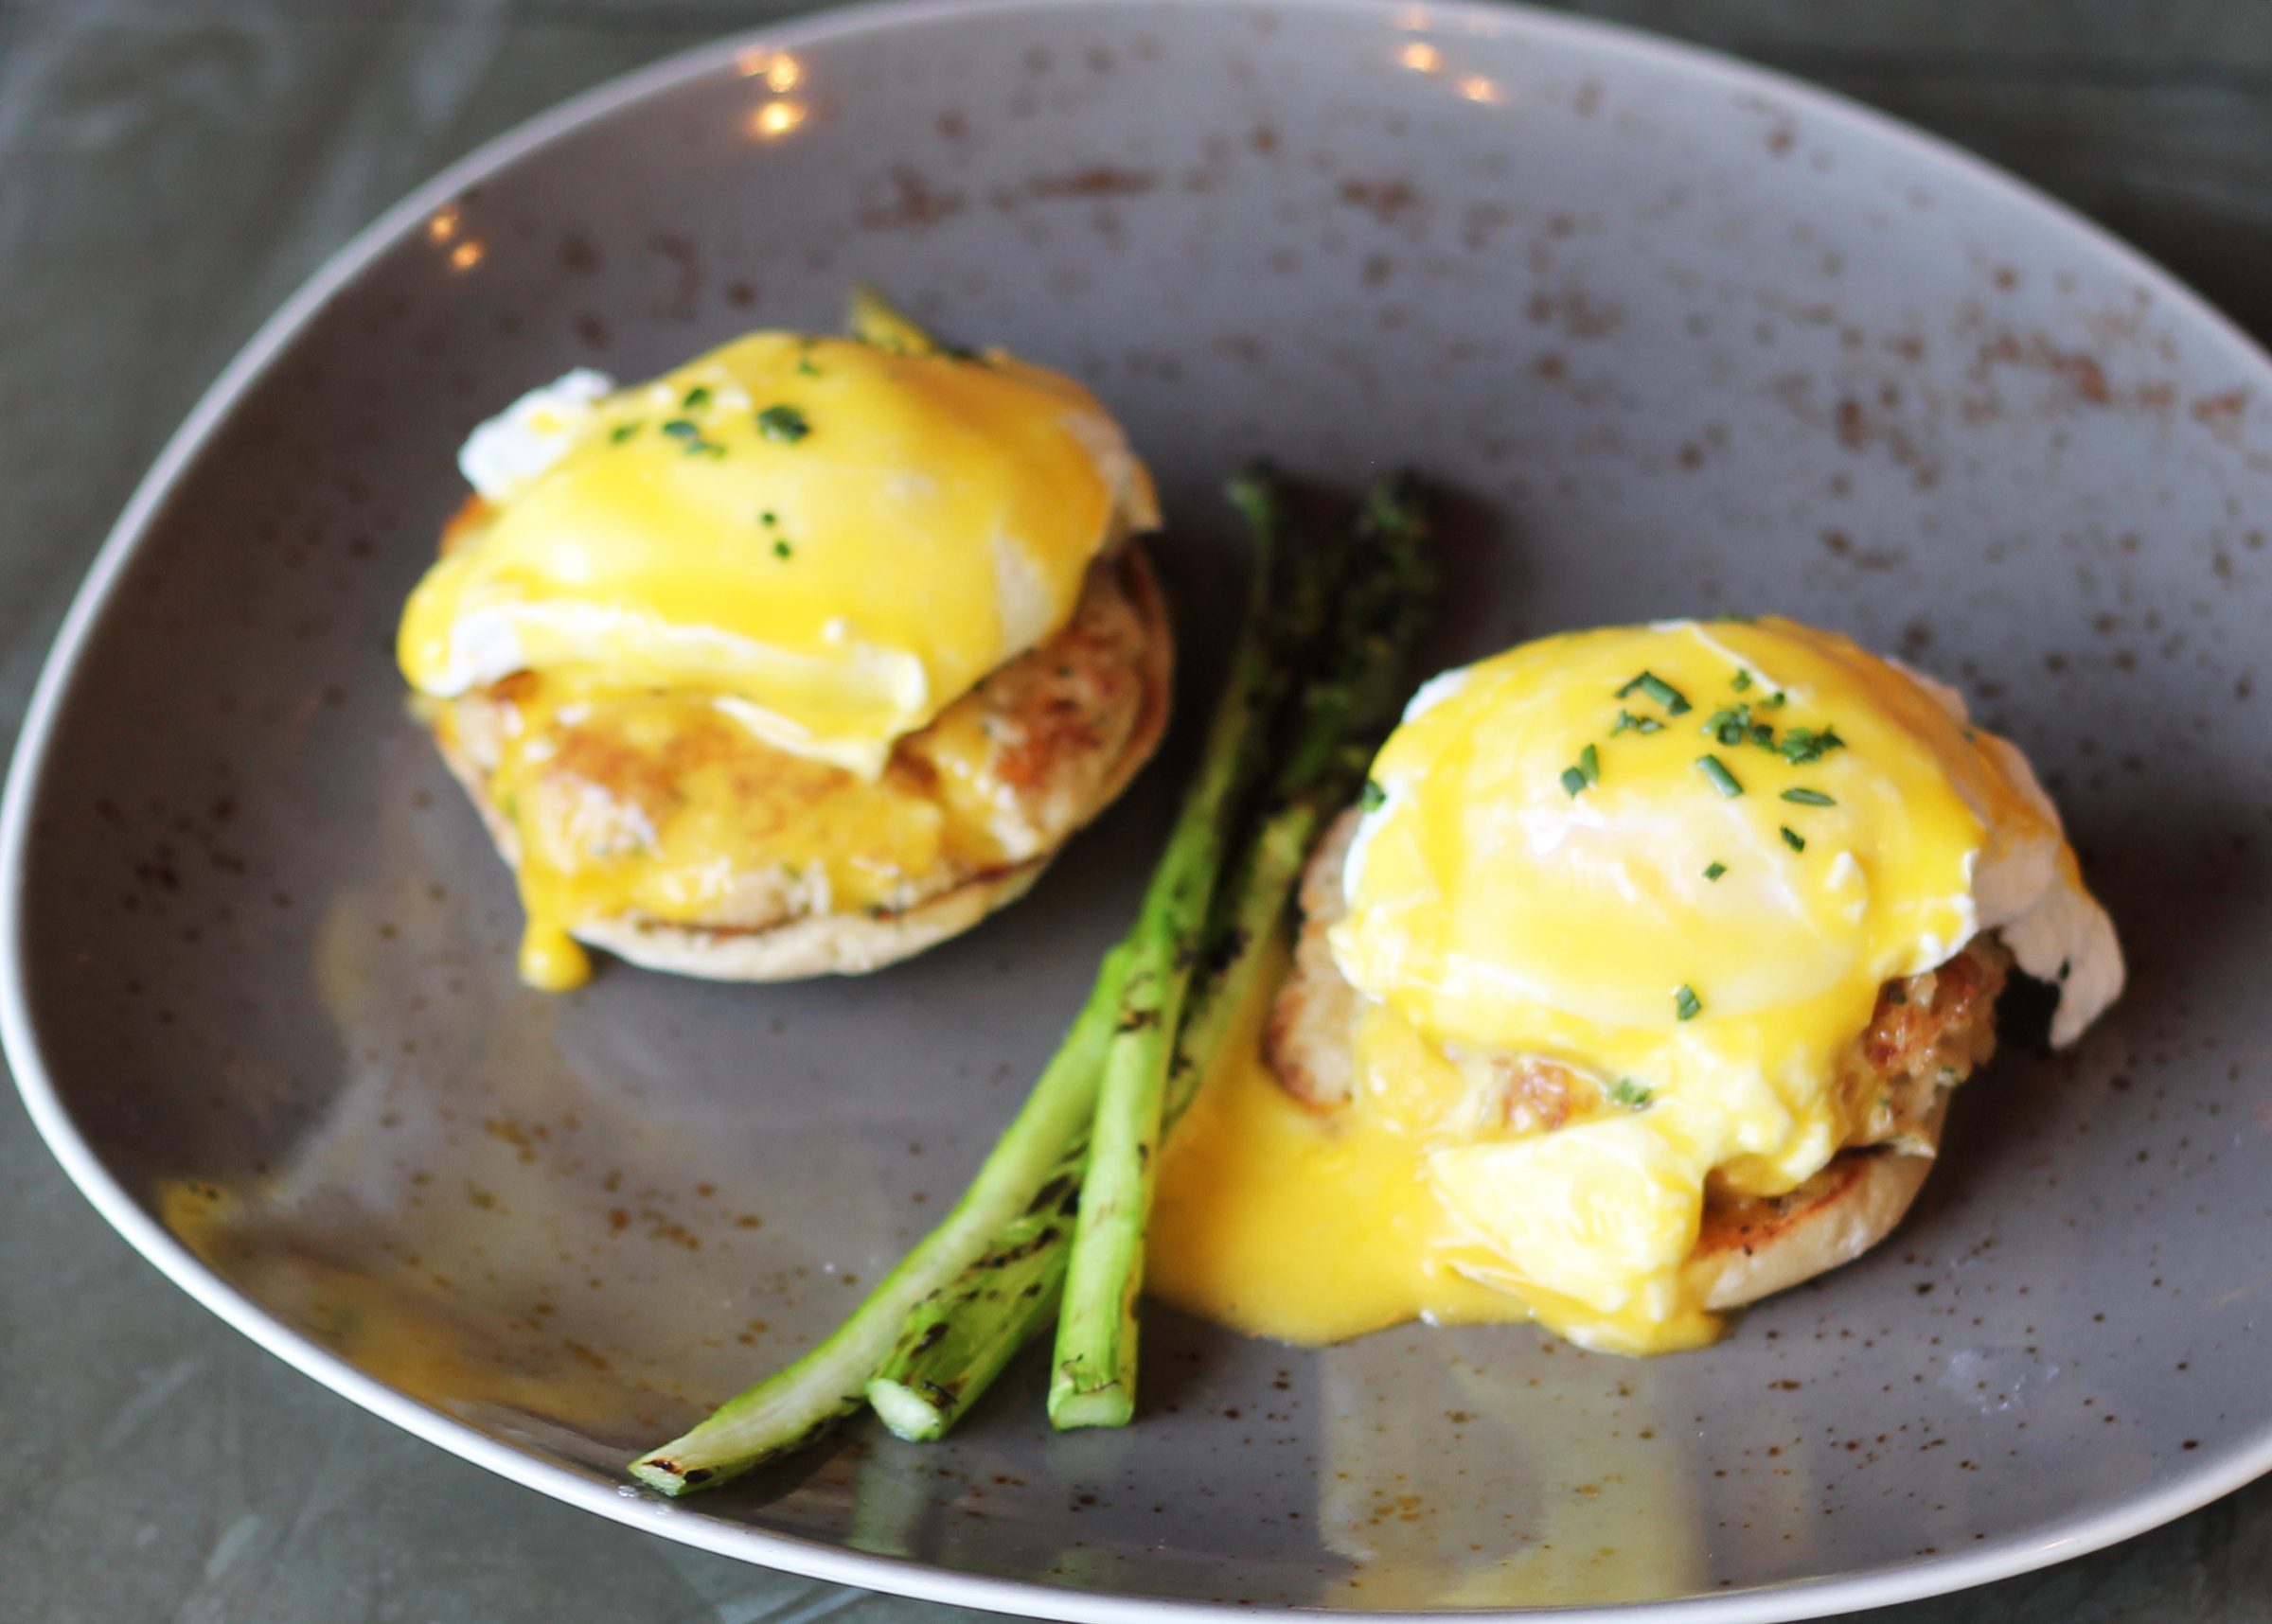 CRAB CAKES EGGS BENEDICT: POACHED EGGS, ENGLISH MUFFIN, HOLLANDAISE